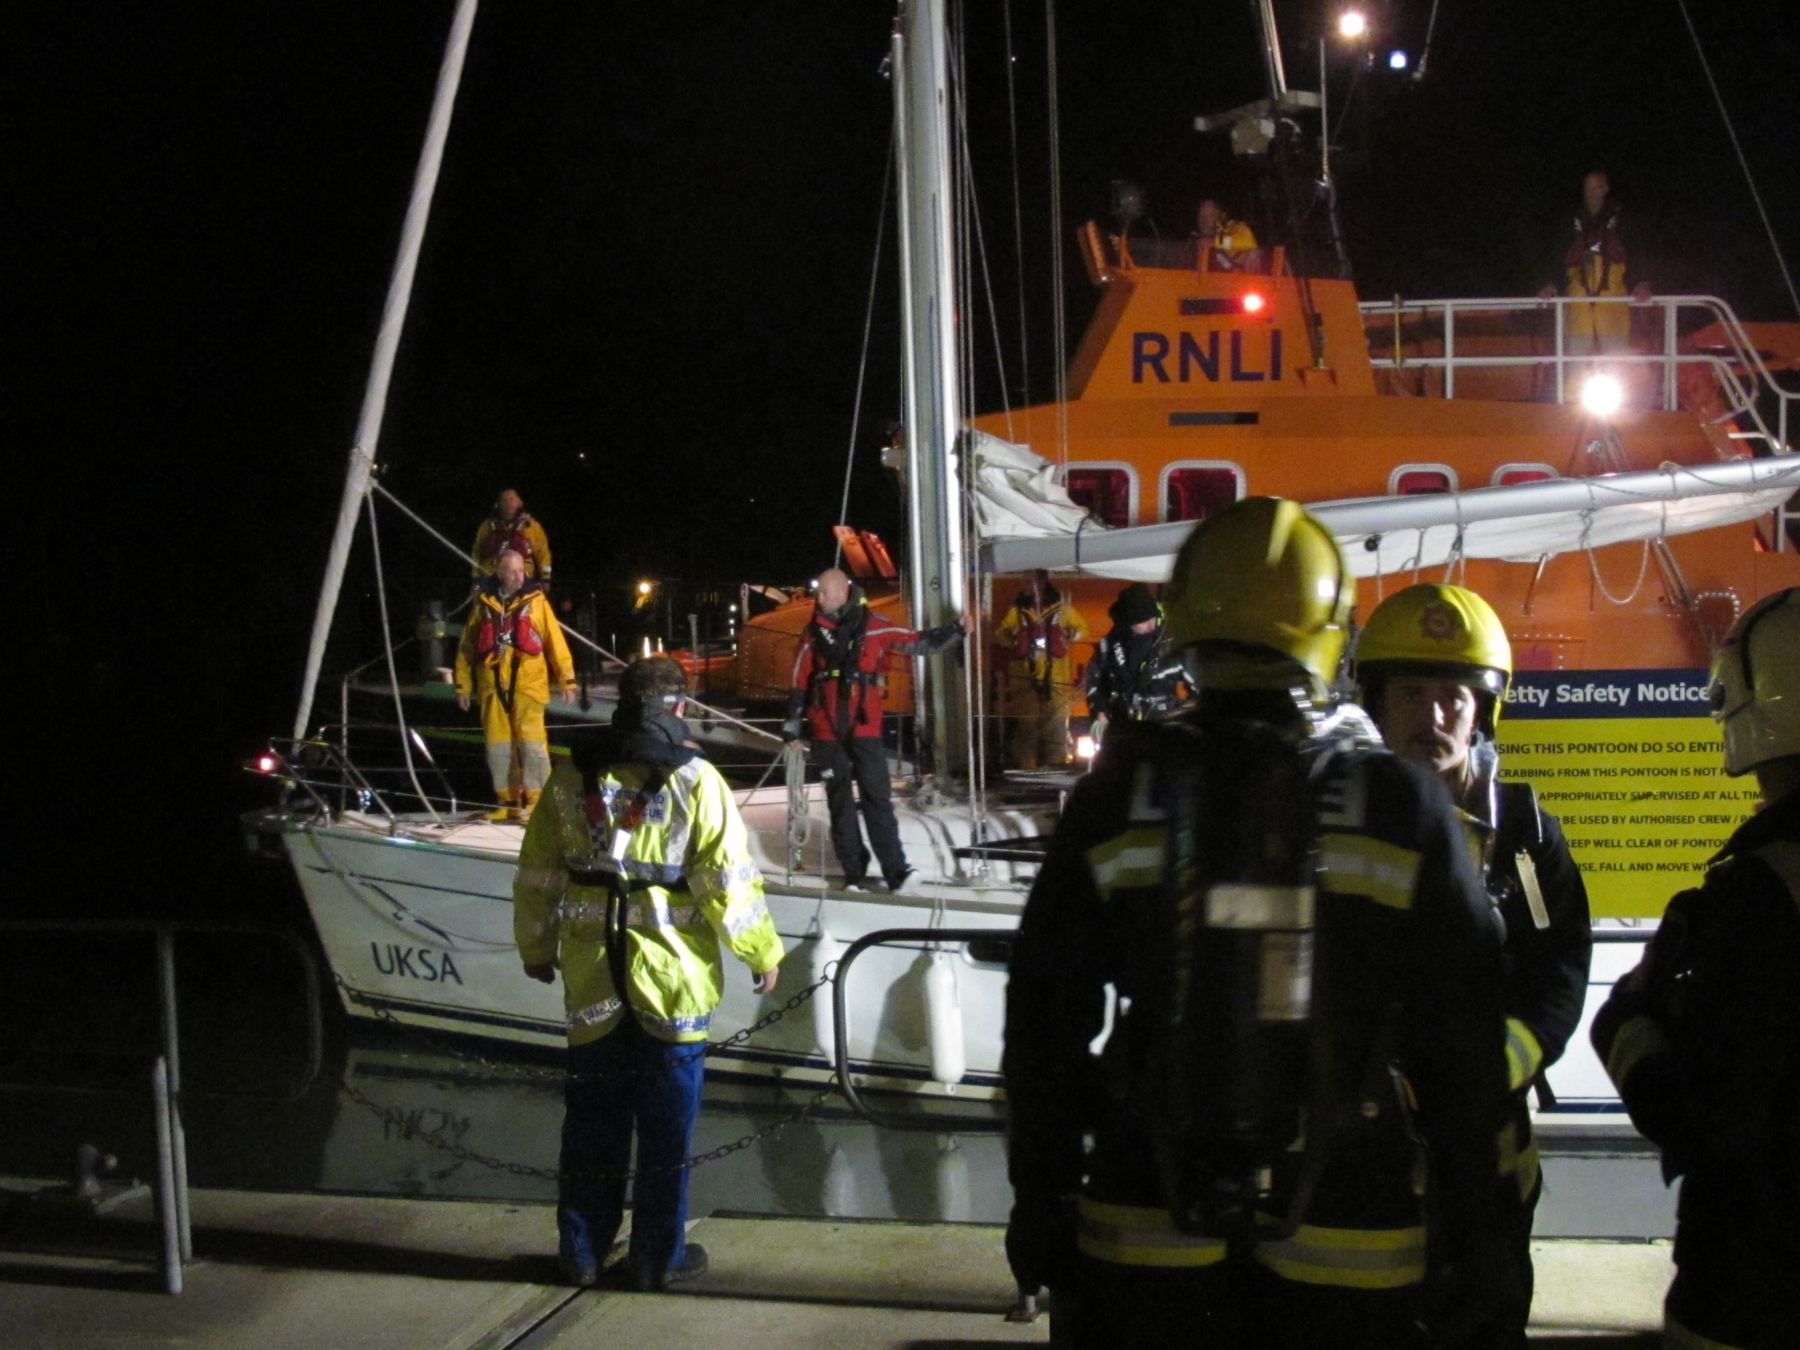 Dartmouth Fire crew await arrival of 44ft yacht with earlier engine fire